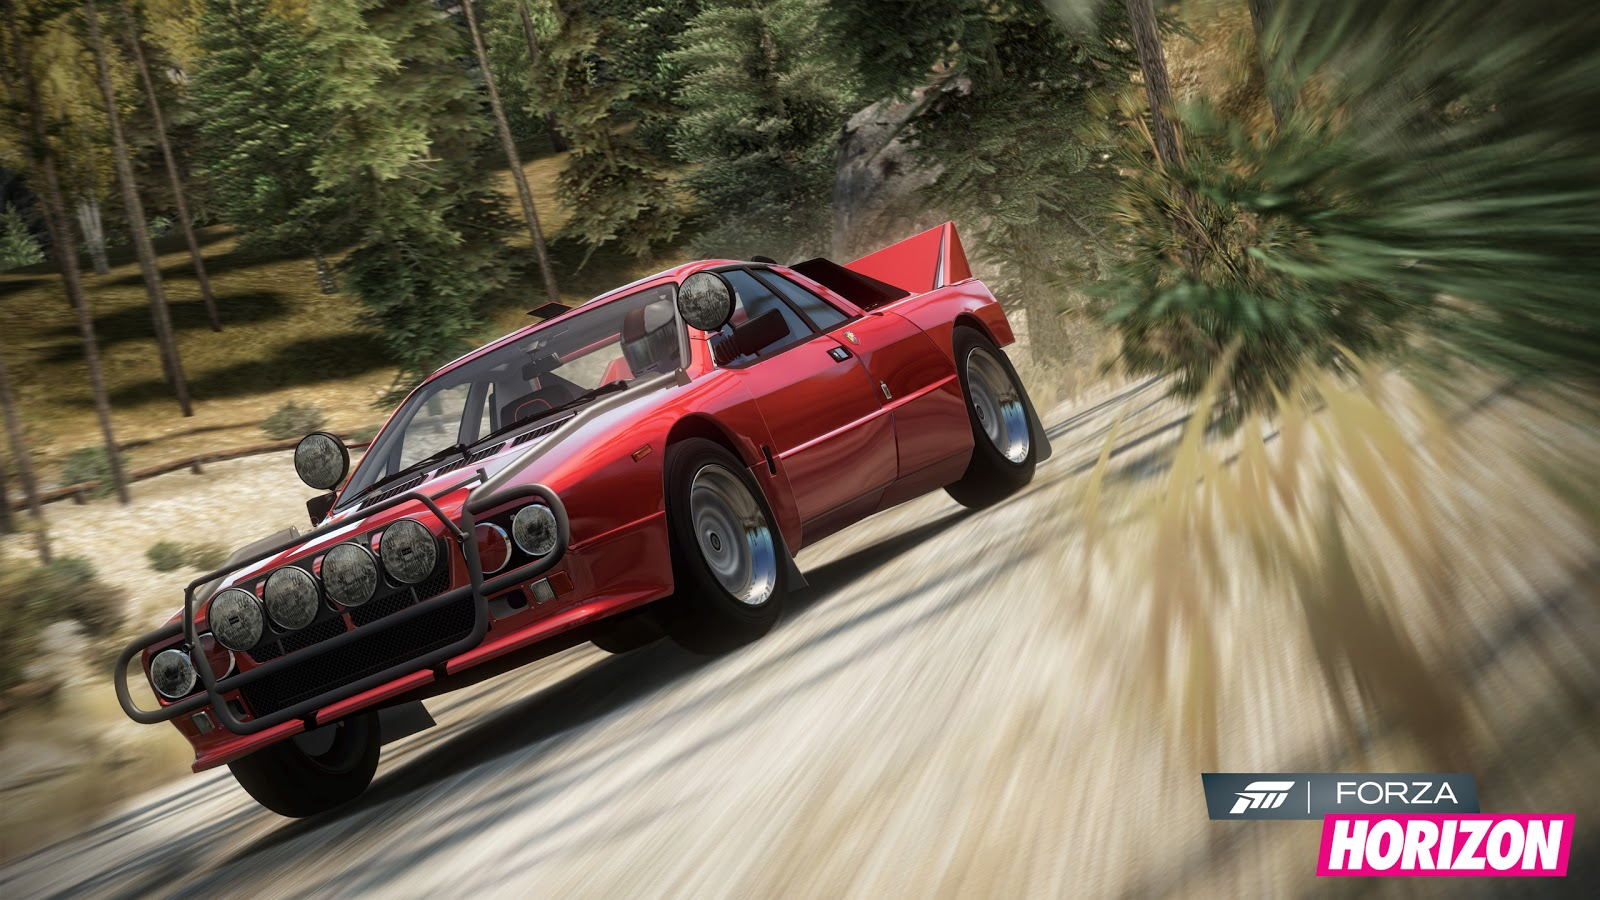 Forza Horizon HD & Widescreen Wallpaper 0.545143175188412